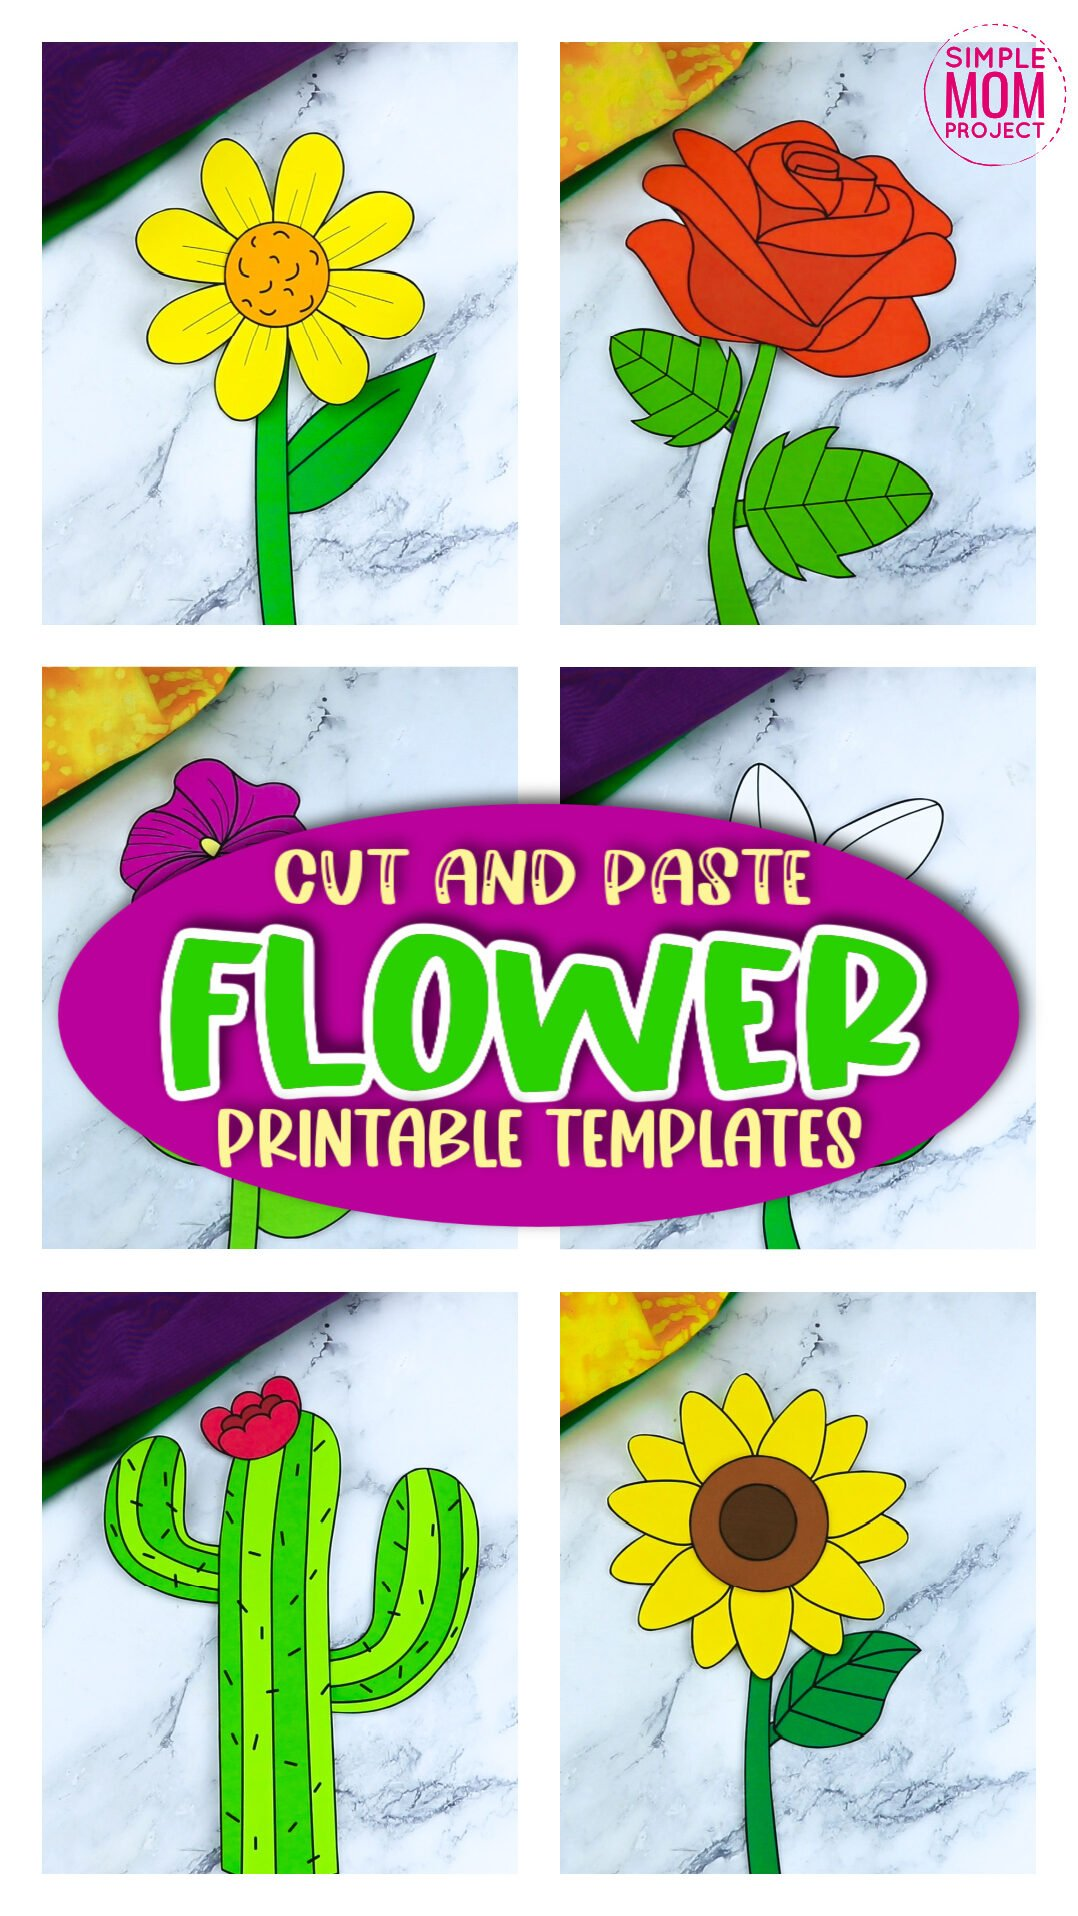 Printable Flower Craft Templates for flower Crafts for Kids Preschoolers and toddlers